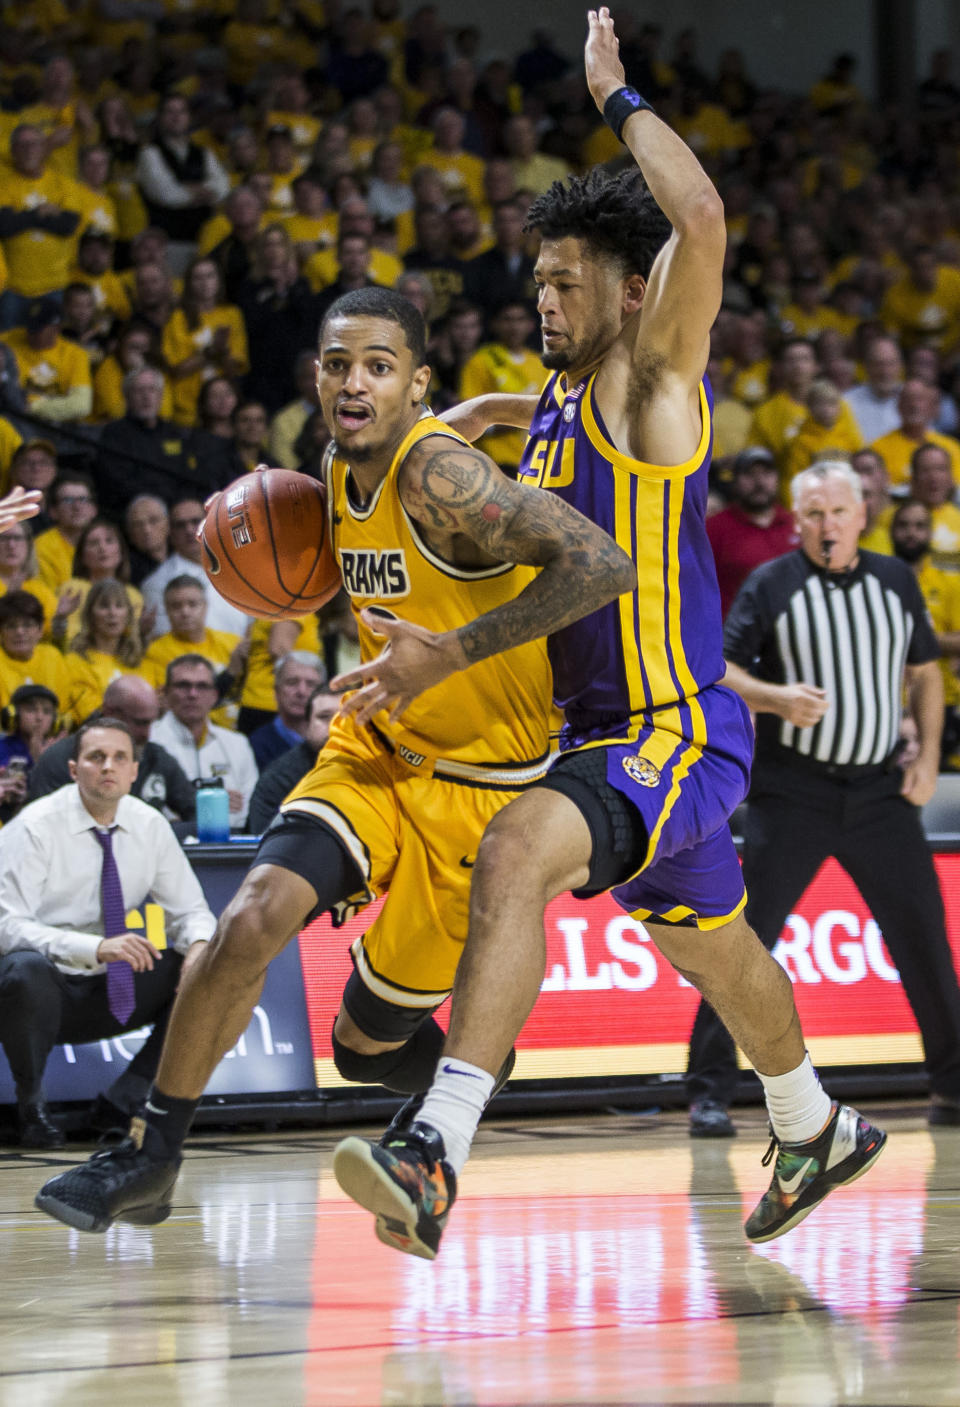 Virginia Commonwealth guard Marcus Evans (2) drives around LSU guard Skylar Mays (4) during the first half of an NCAA college basketball game in Richmond, Va., Wednesday, Nov. 13, 2019. (AP Photo/Zach Gibson)